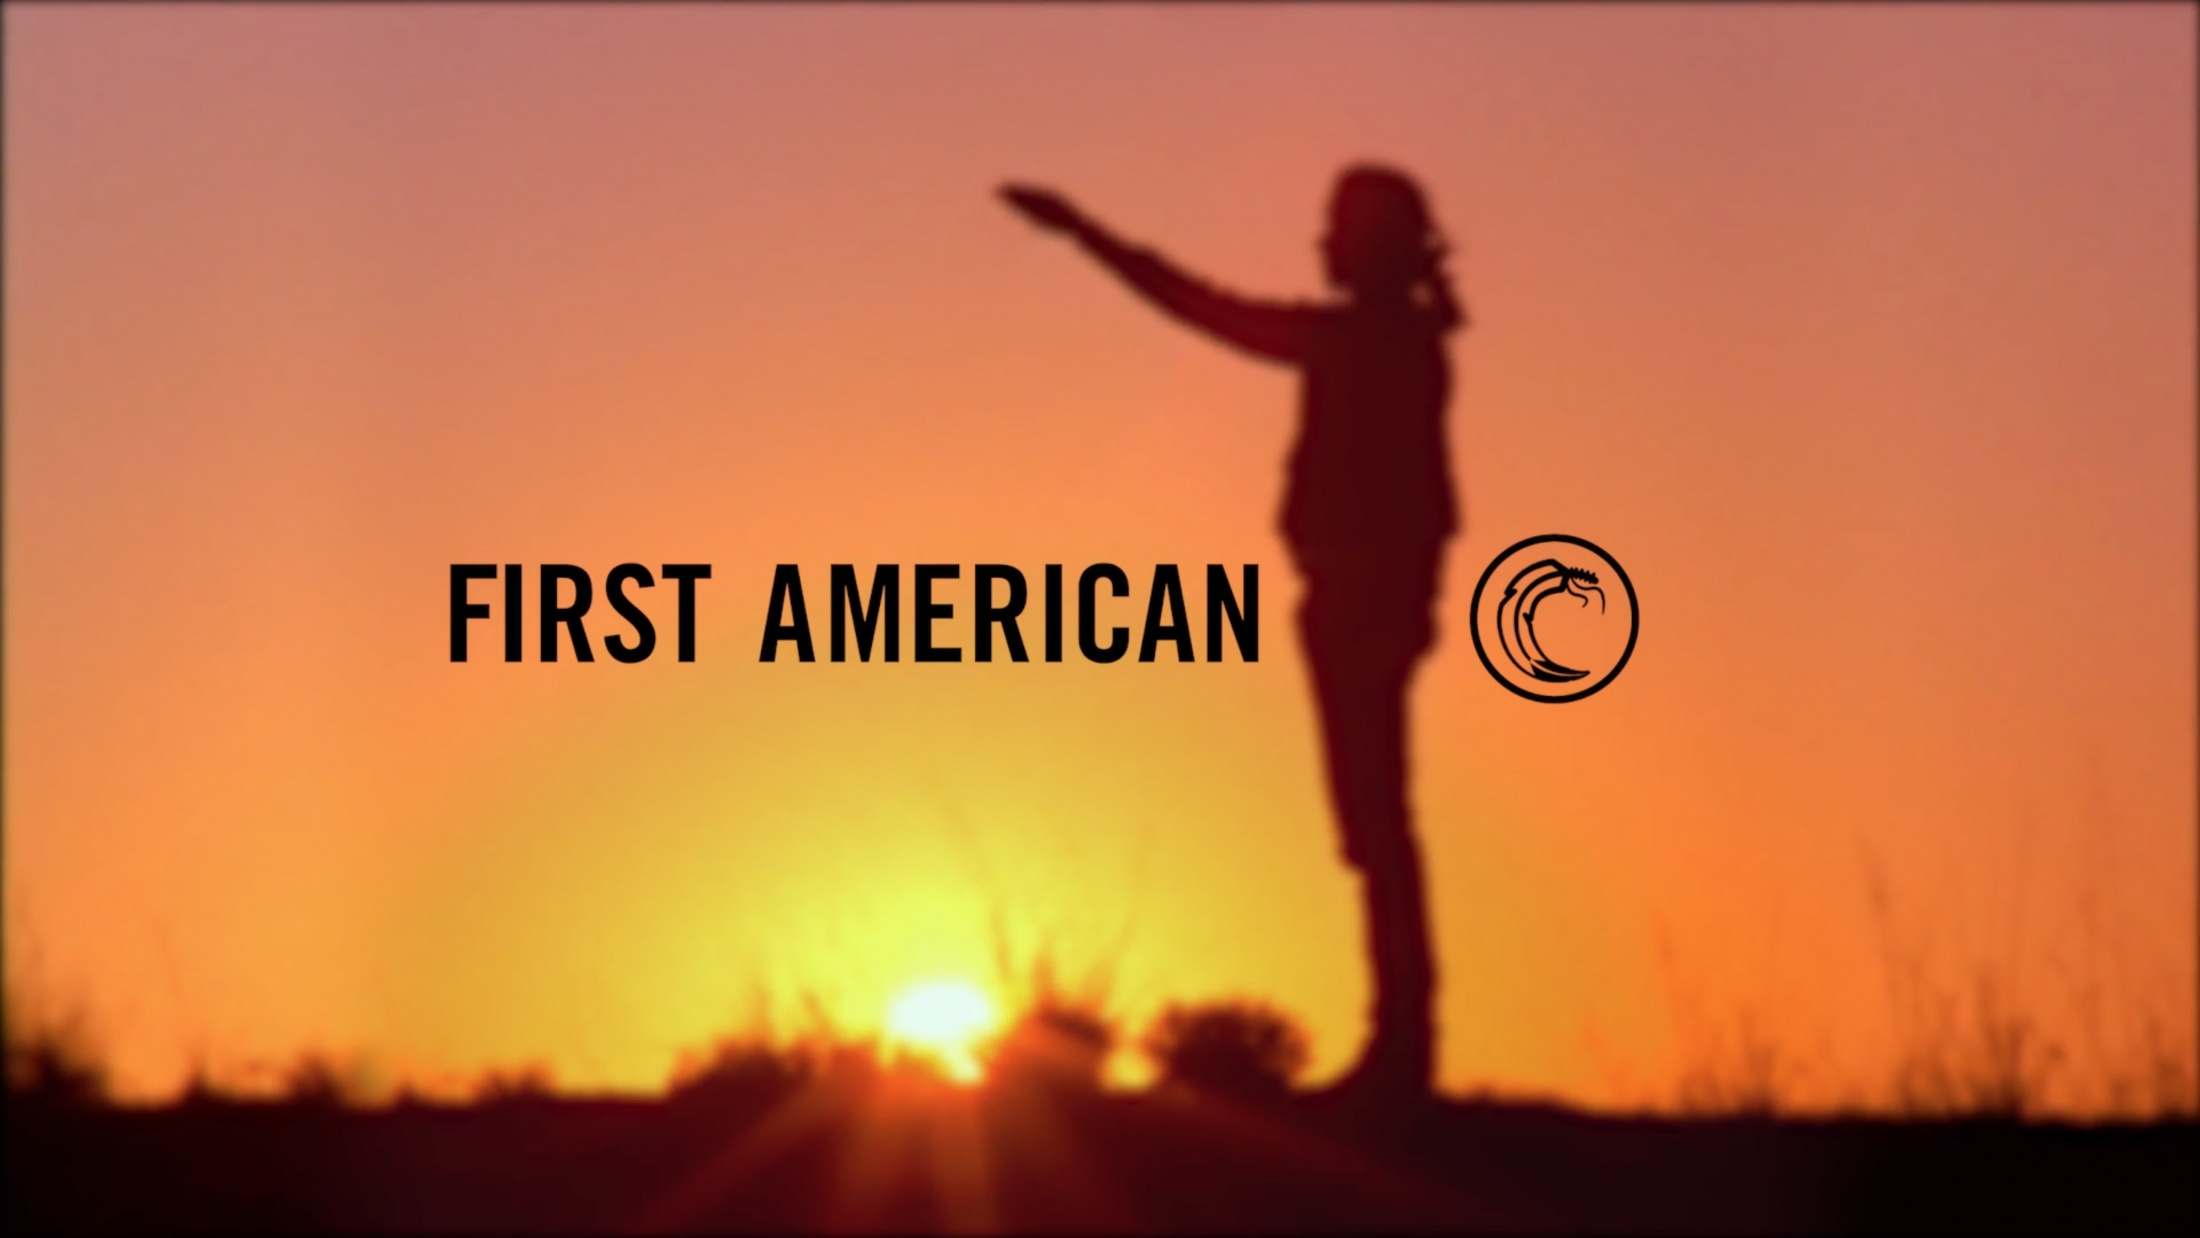 Image Media for First American